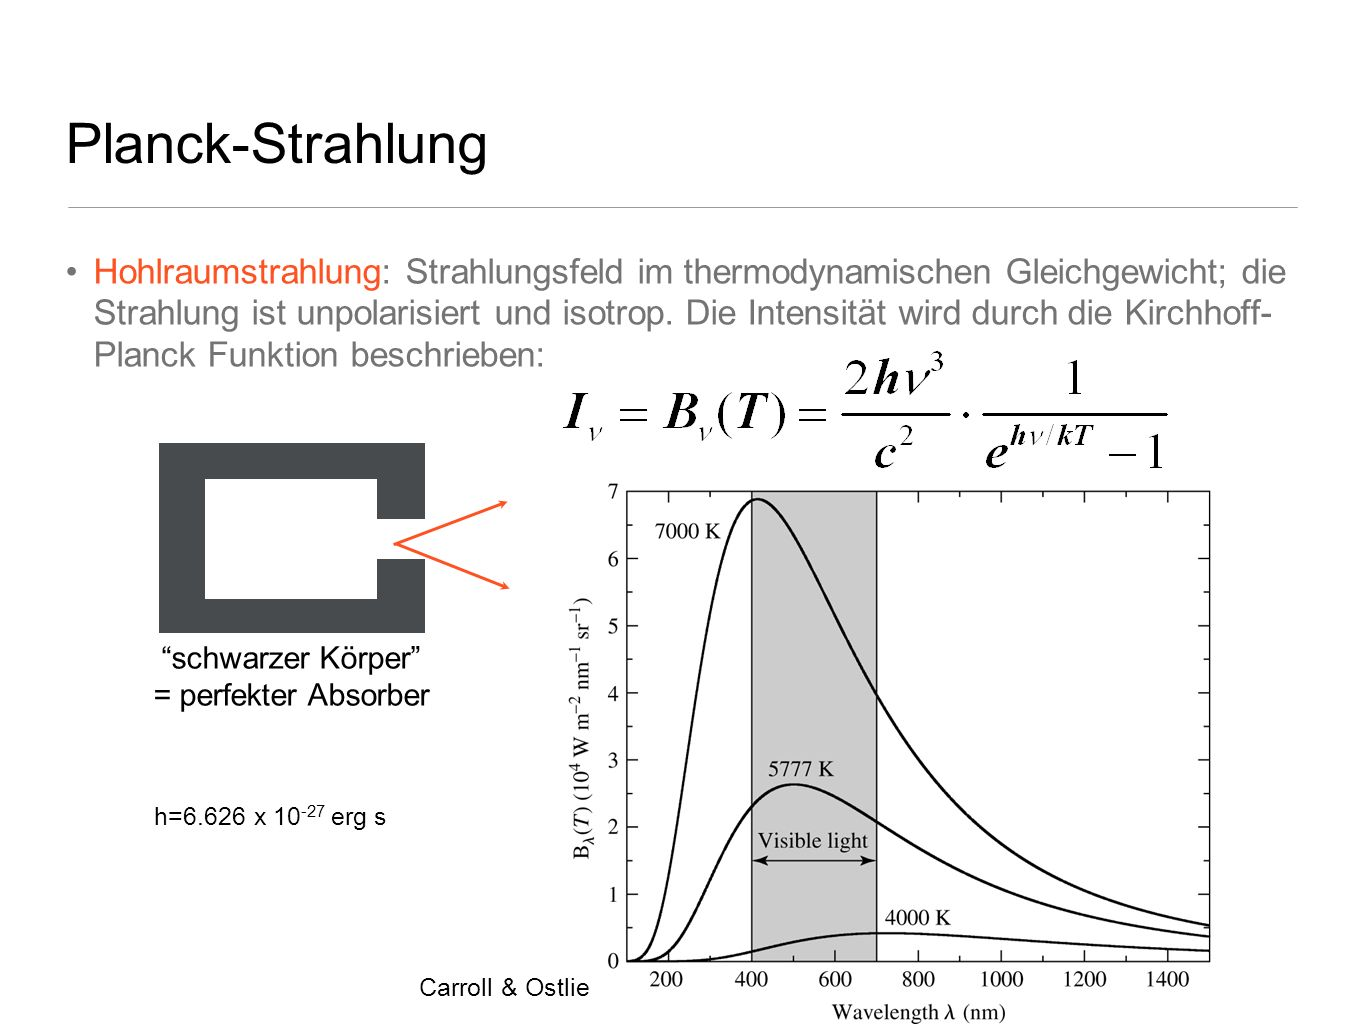 Planck-Strahlung